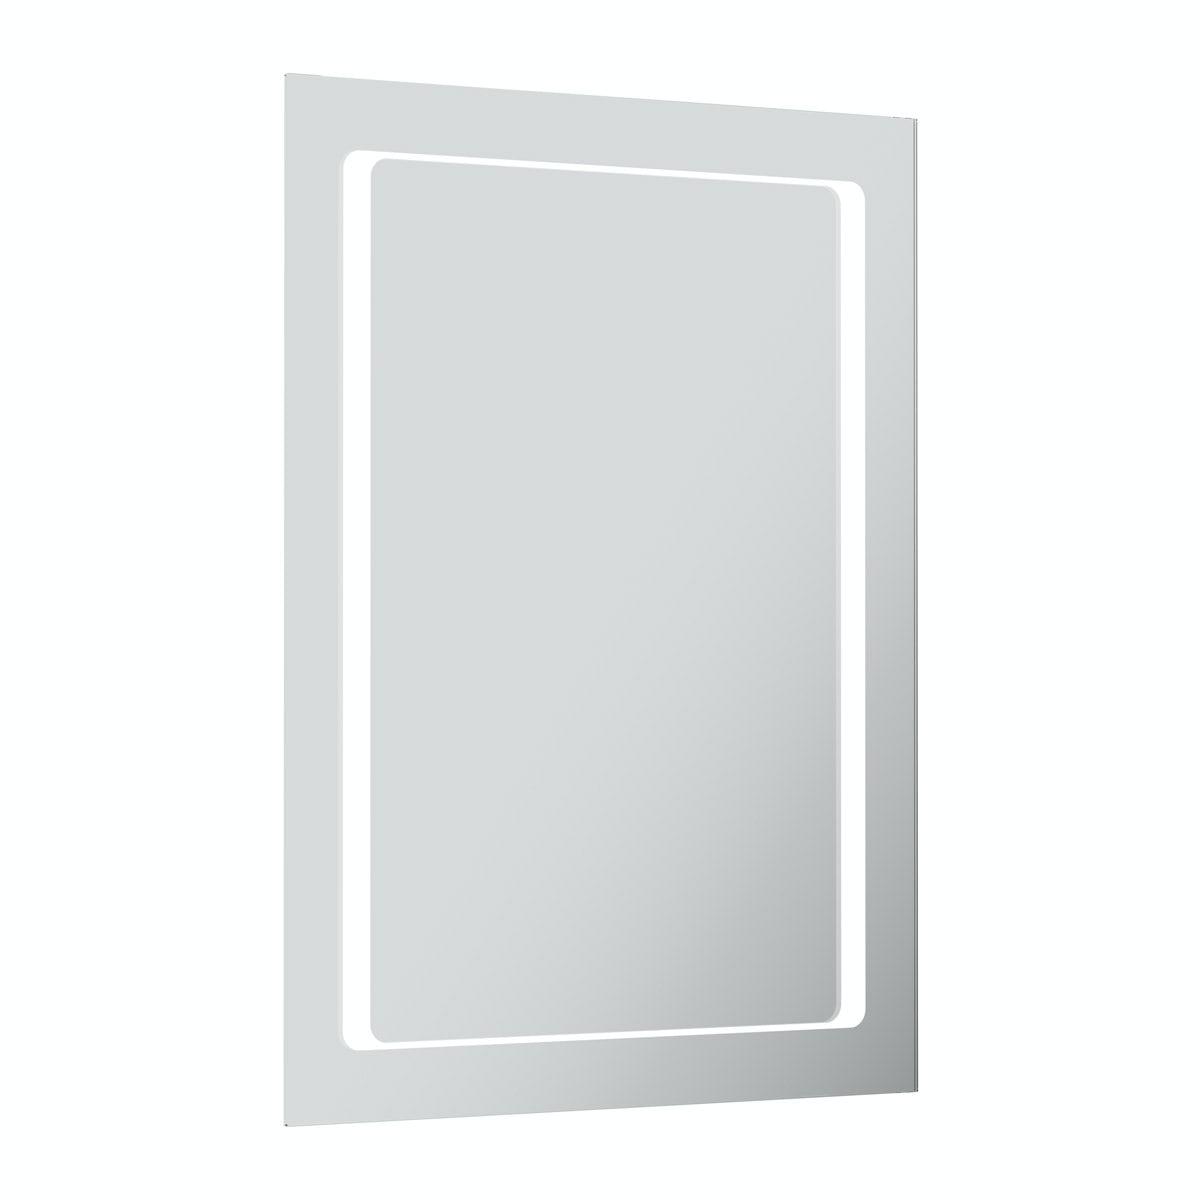 Mode Shine rectangular Bluetooth LED mirror